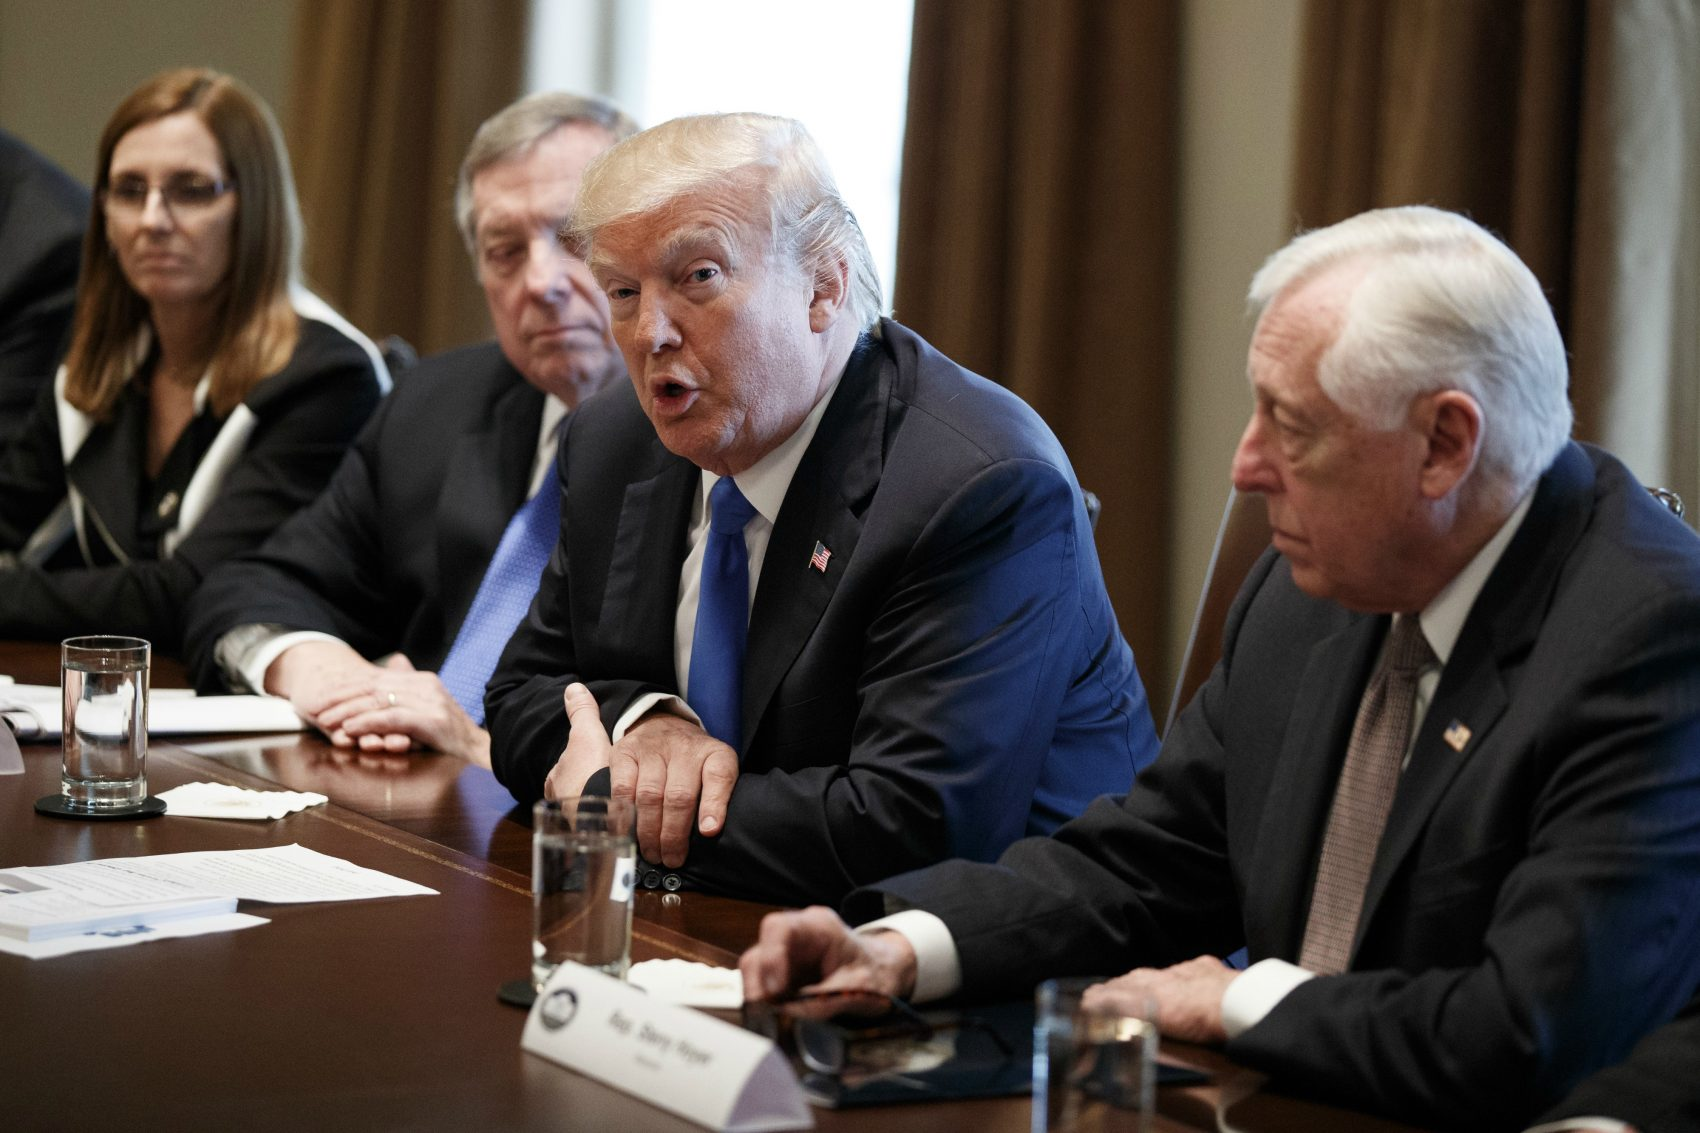 President Donald Trump speaks during a meeting with lawmakers on immigration policy in the Cabinet Room of the White House, Tuesday, Jan. 9, 2018, in Washington.  (Evan Vucci/AP)